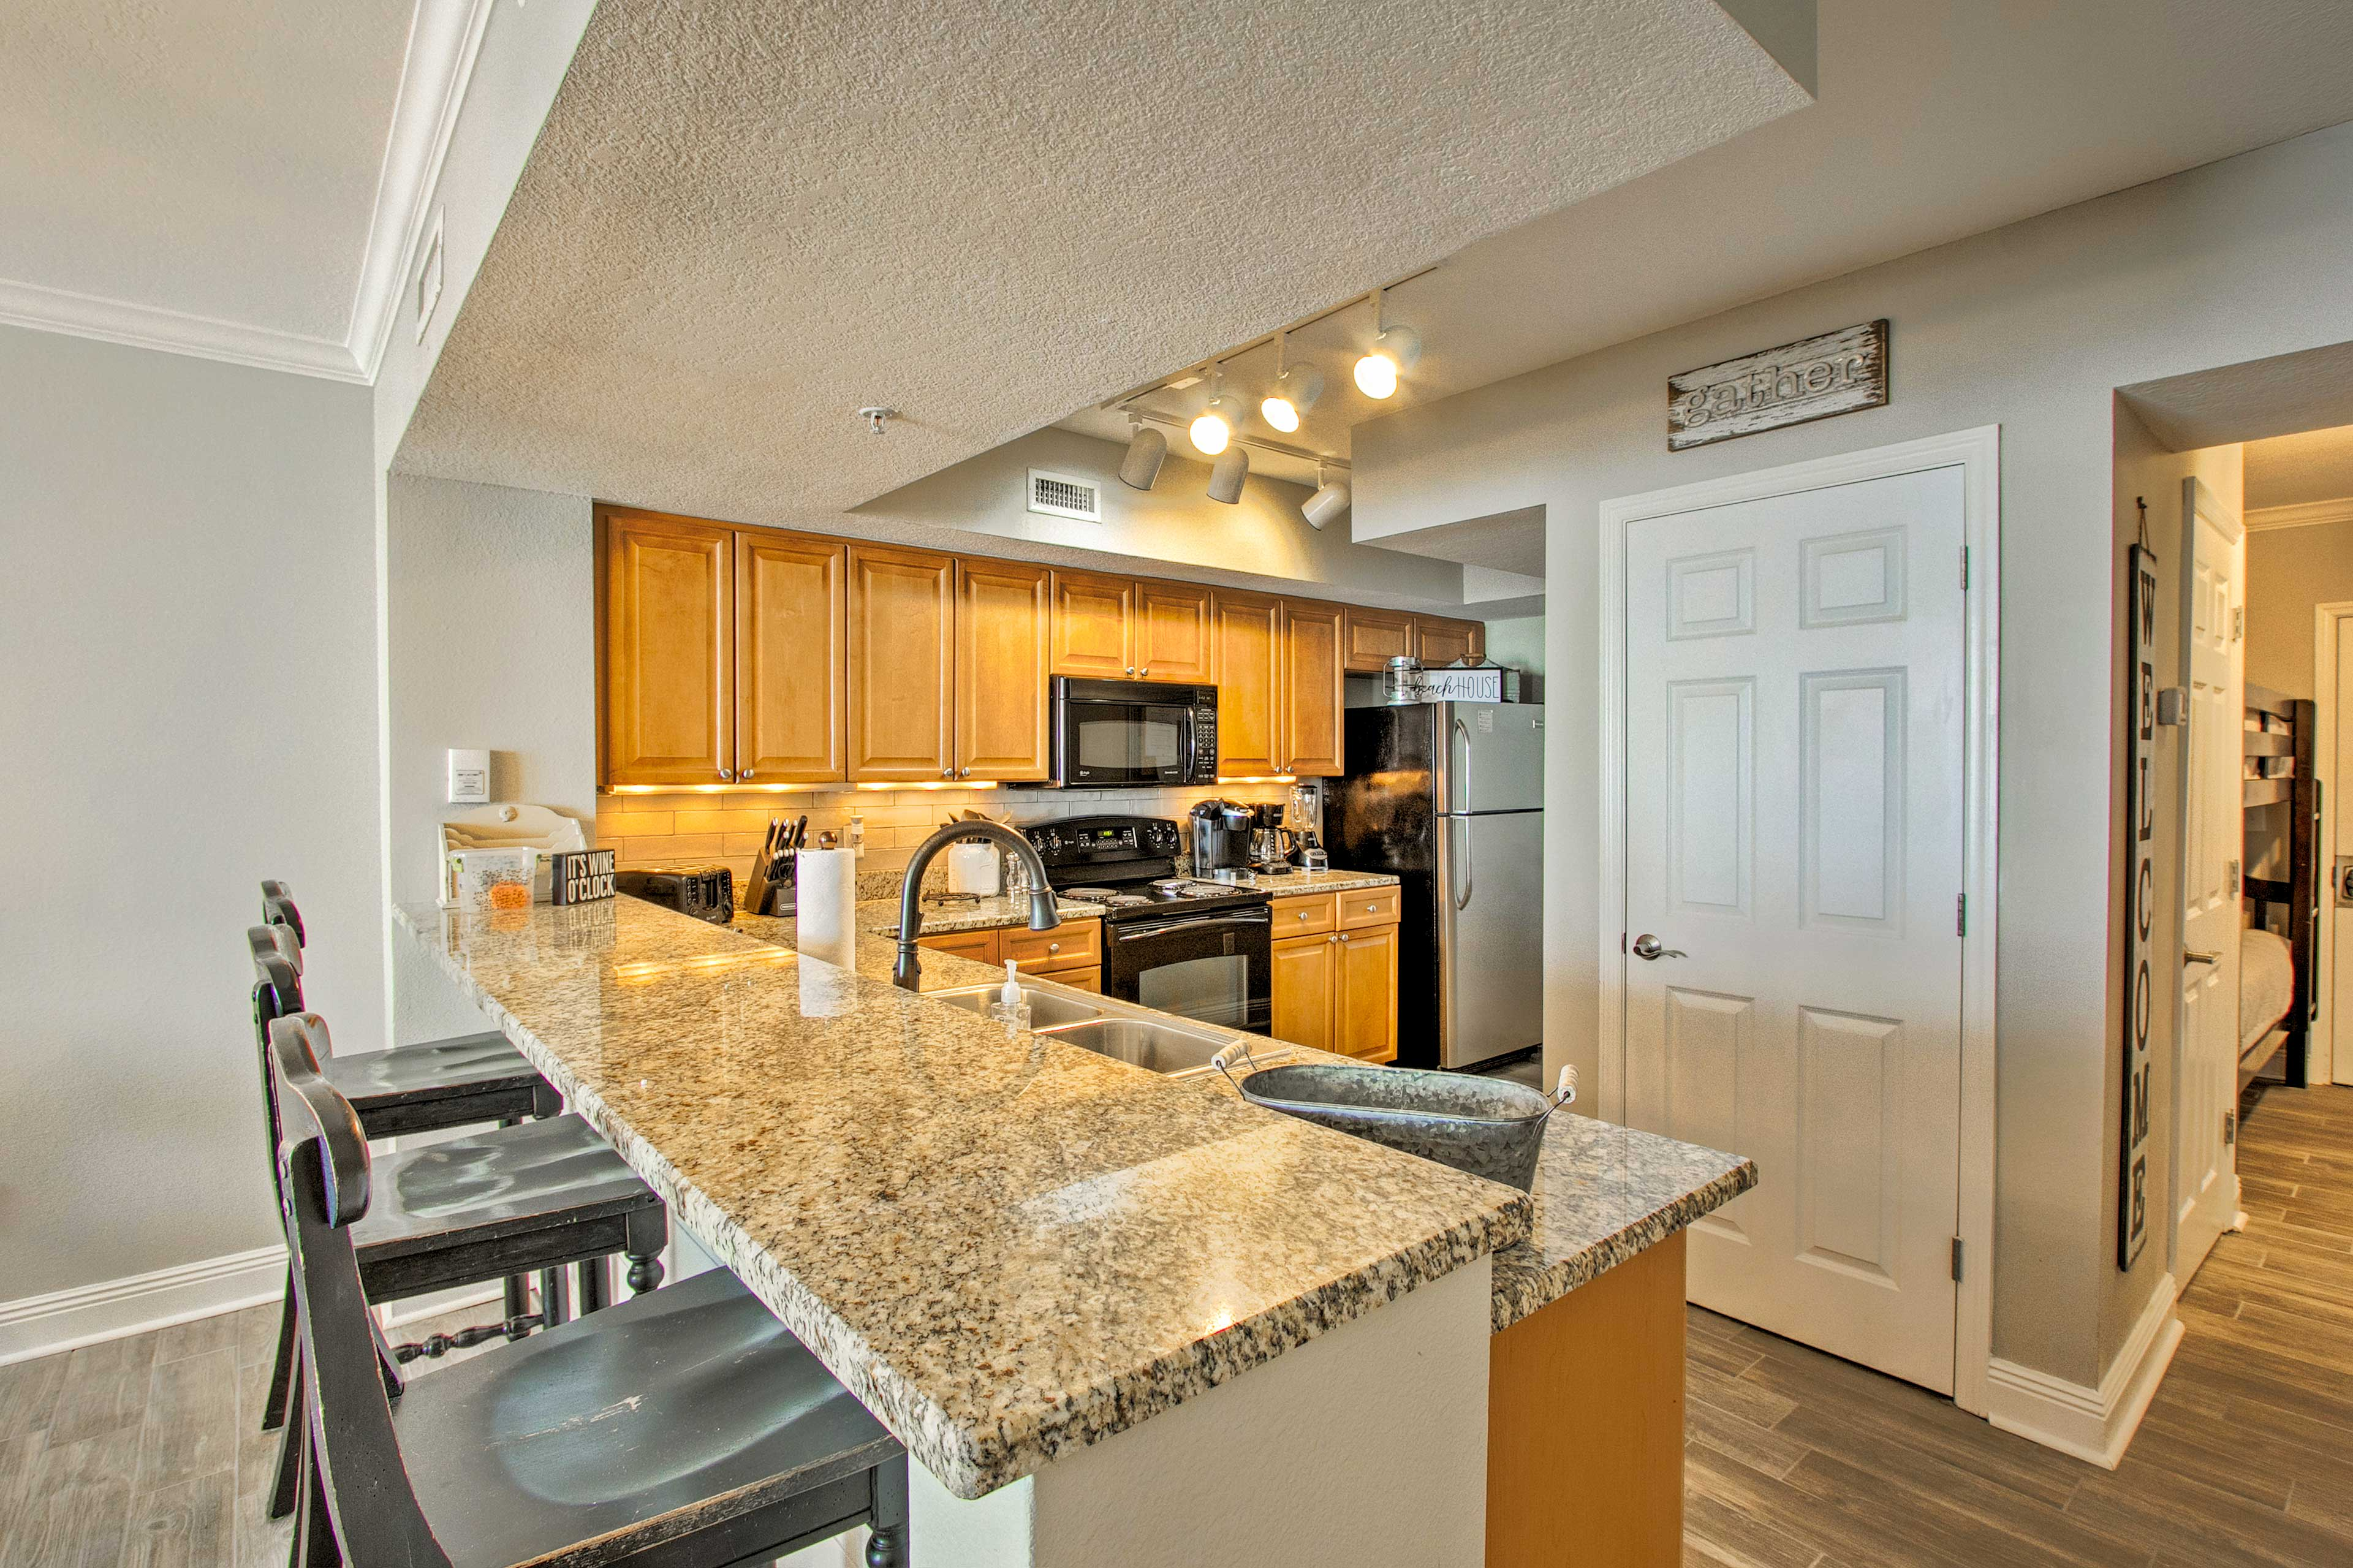 The kitchen comes fully equipped to handle all your cooking needs!